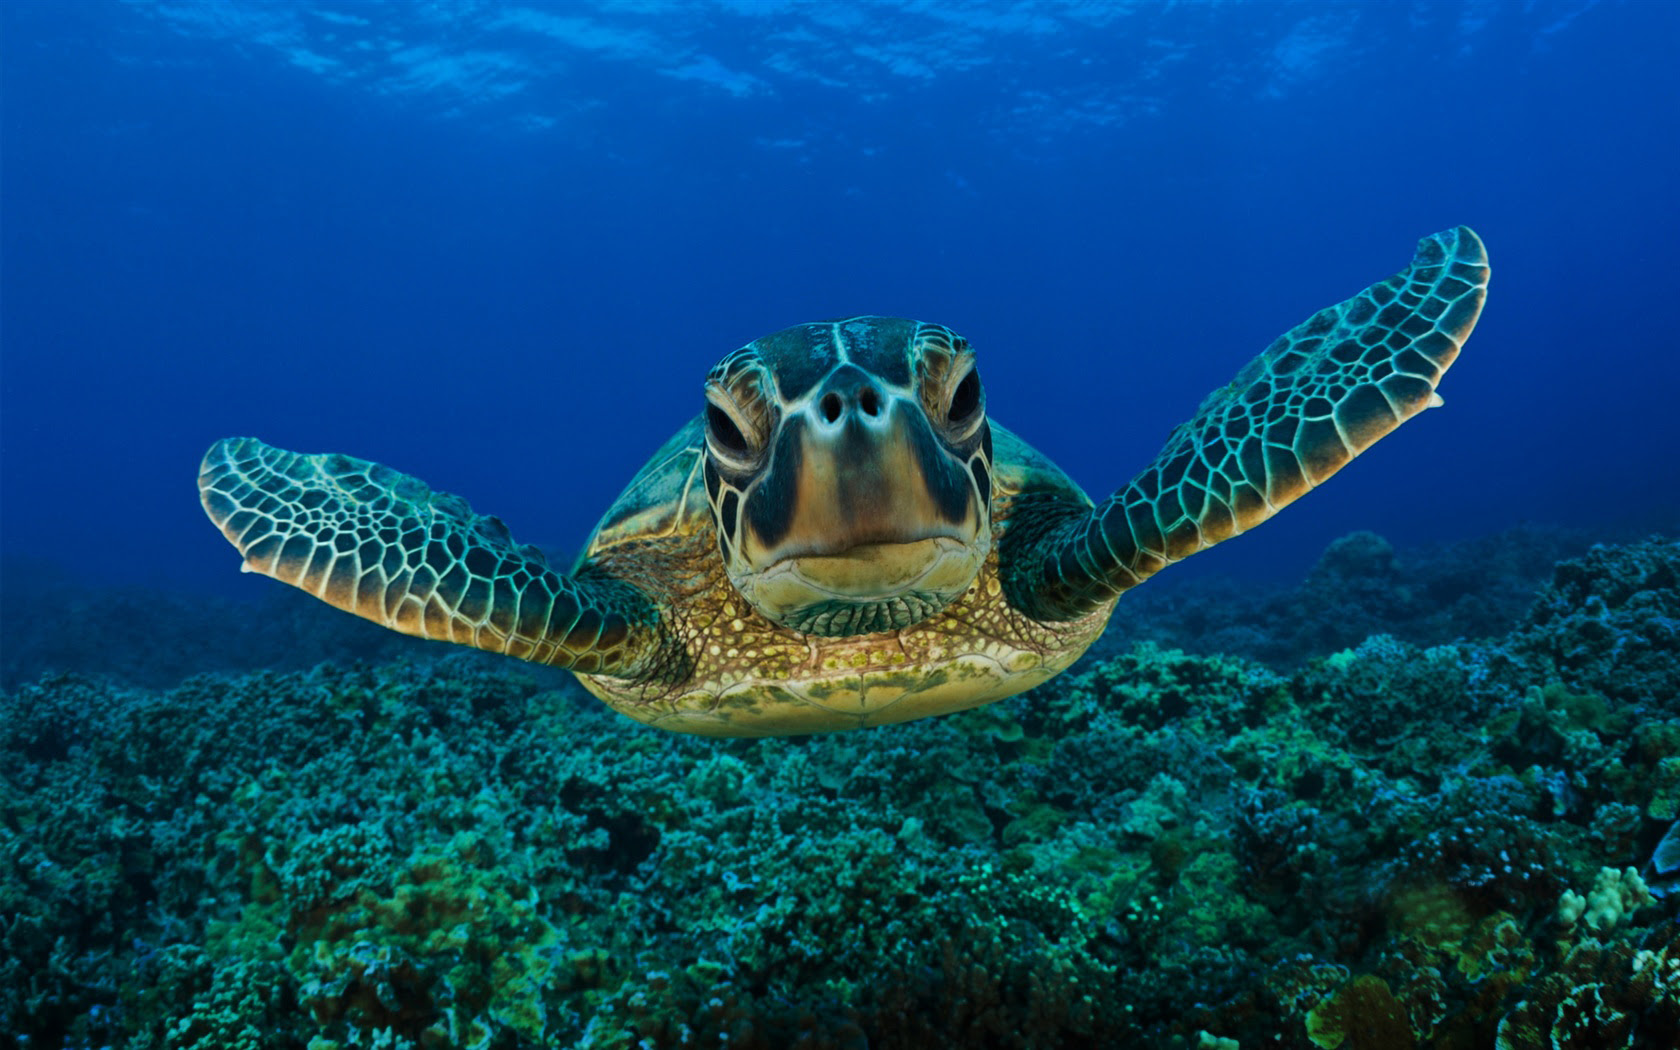 http://missjheintz.edublogs.org/files/2012/12/green-seaturtle-1-1q68zk6.jpg